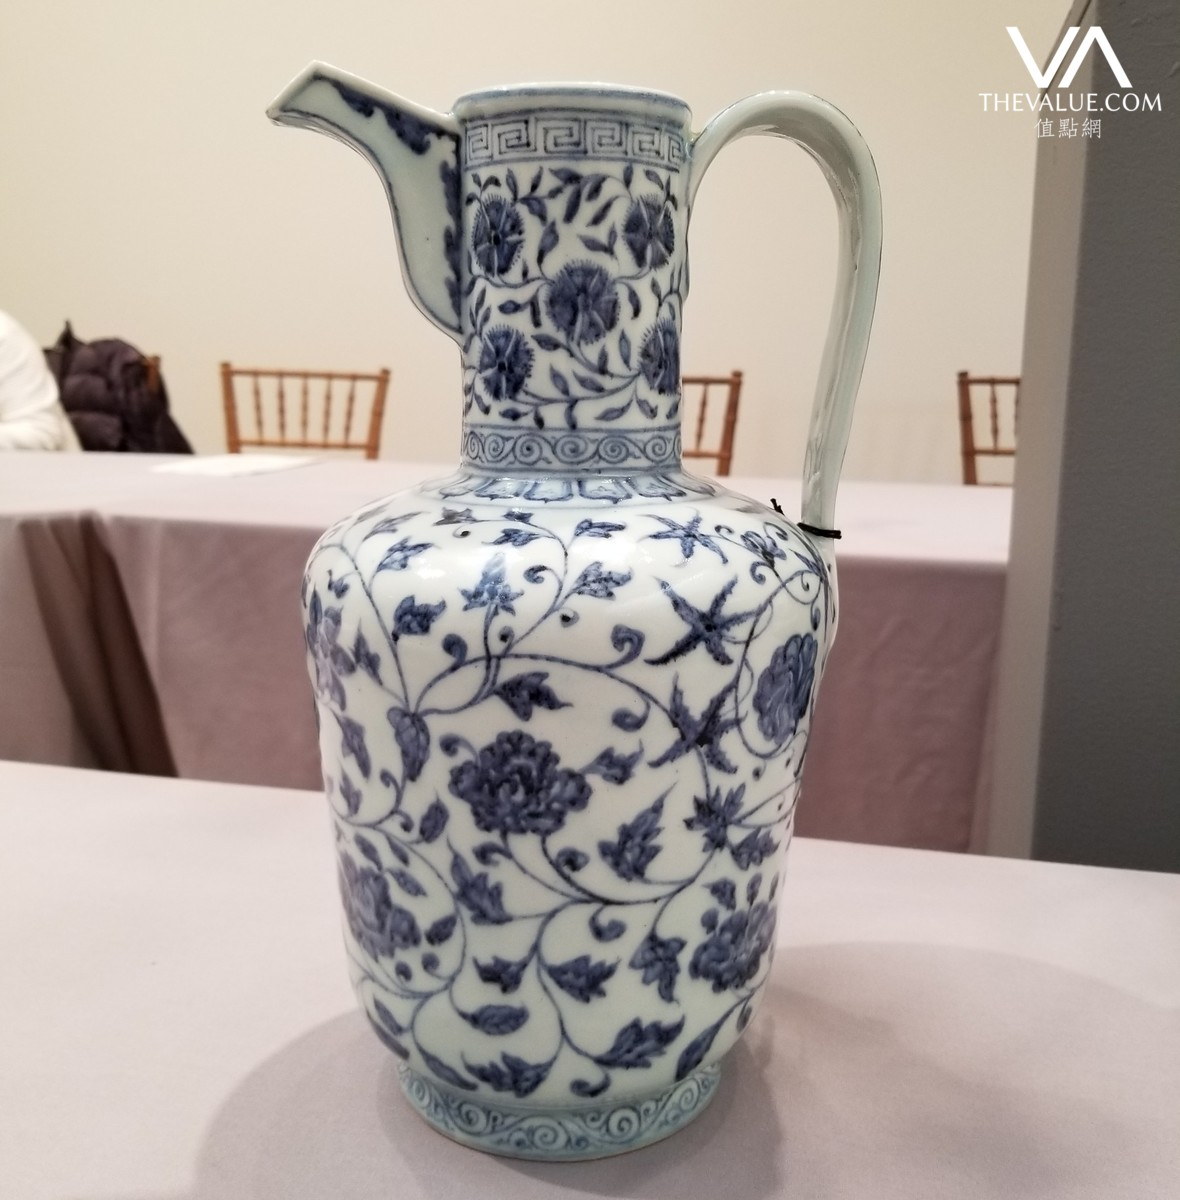 Us313m xuande blue and white ewer leads ming luminous dawn of an blue and white ewer inscribed with a six character xuande mark in the base carried an estimate of us600000 800000 reviewsmspy